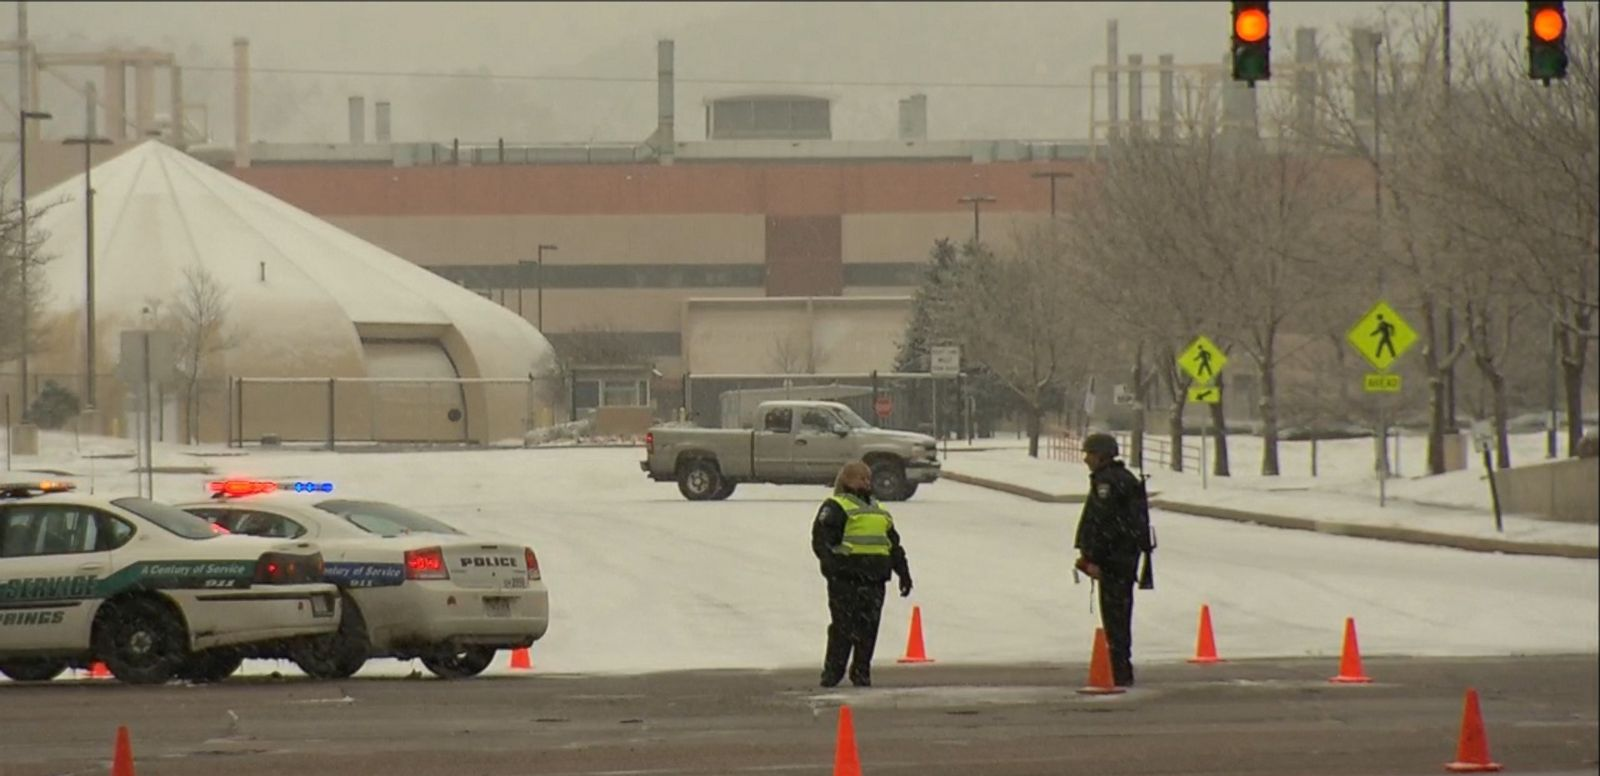 VIDEO: Three officers were shot amid an active shooter situation in Colorado Springs Friday afternoon and there may be more victims, police said.